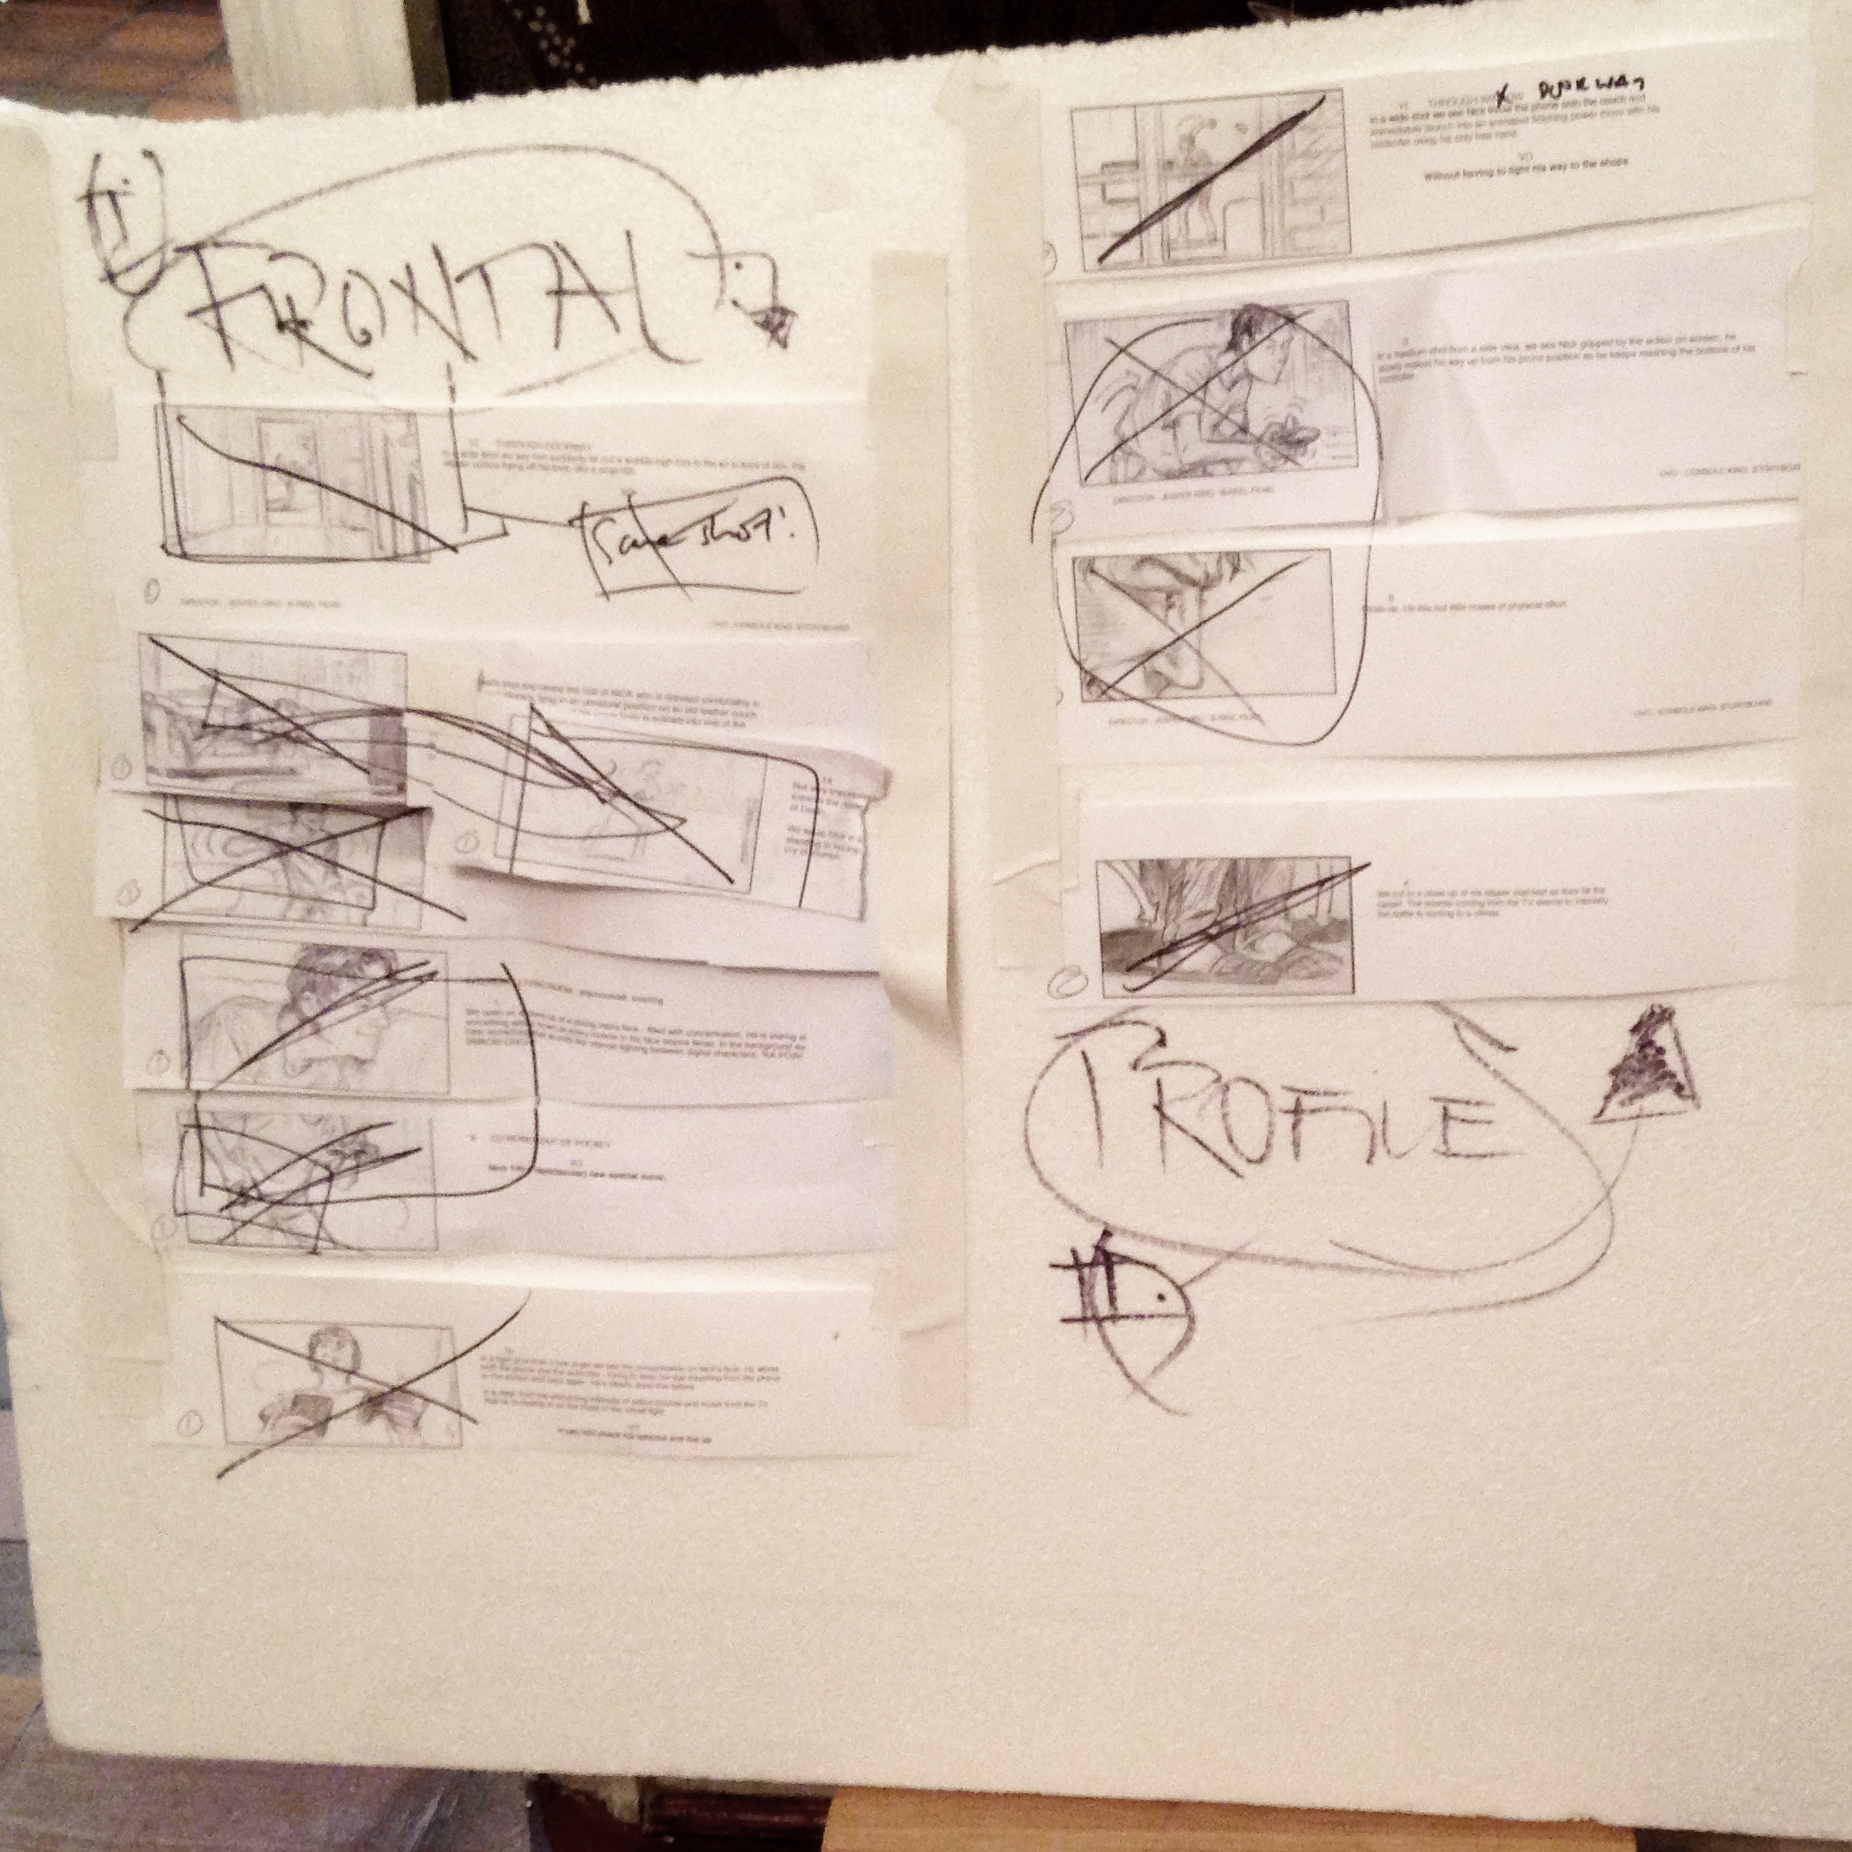 Poly used for displaying storyboards